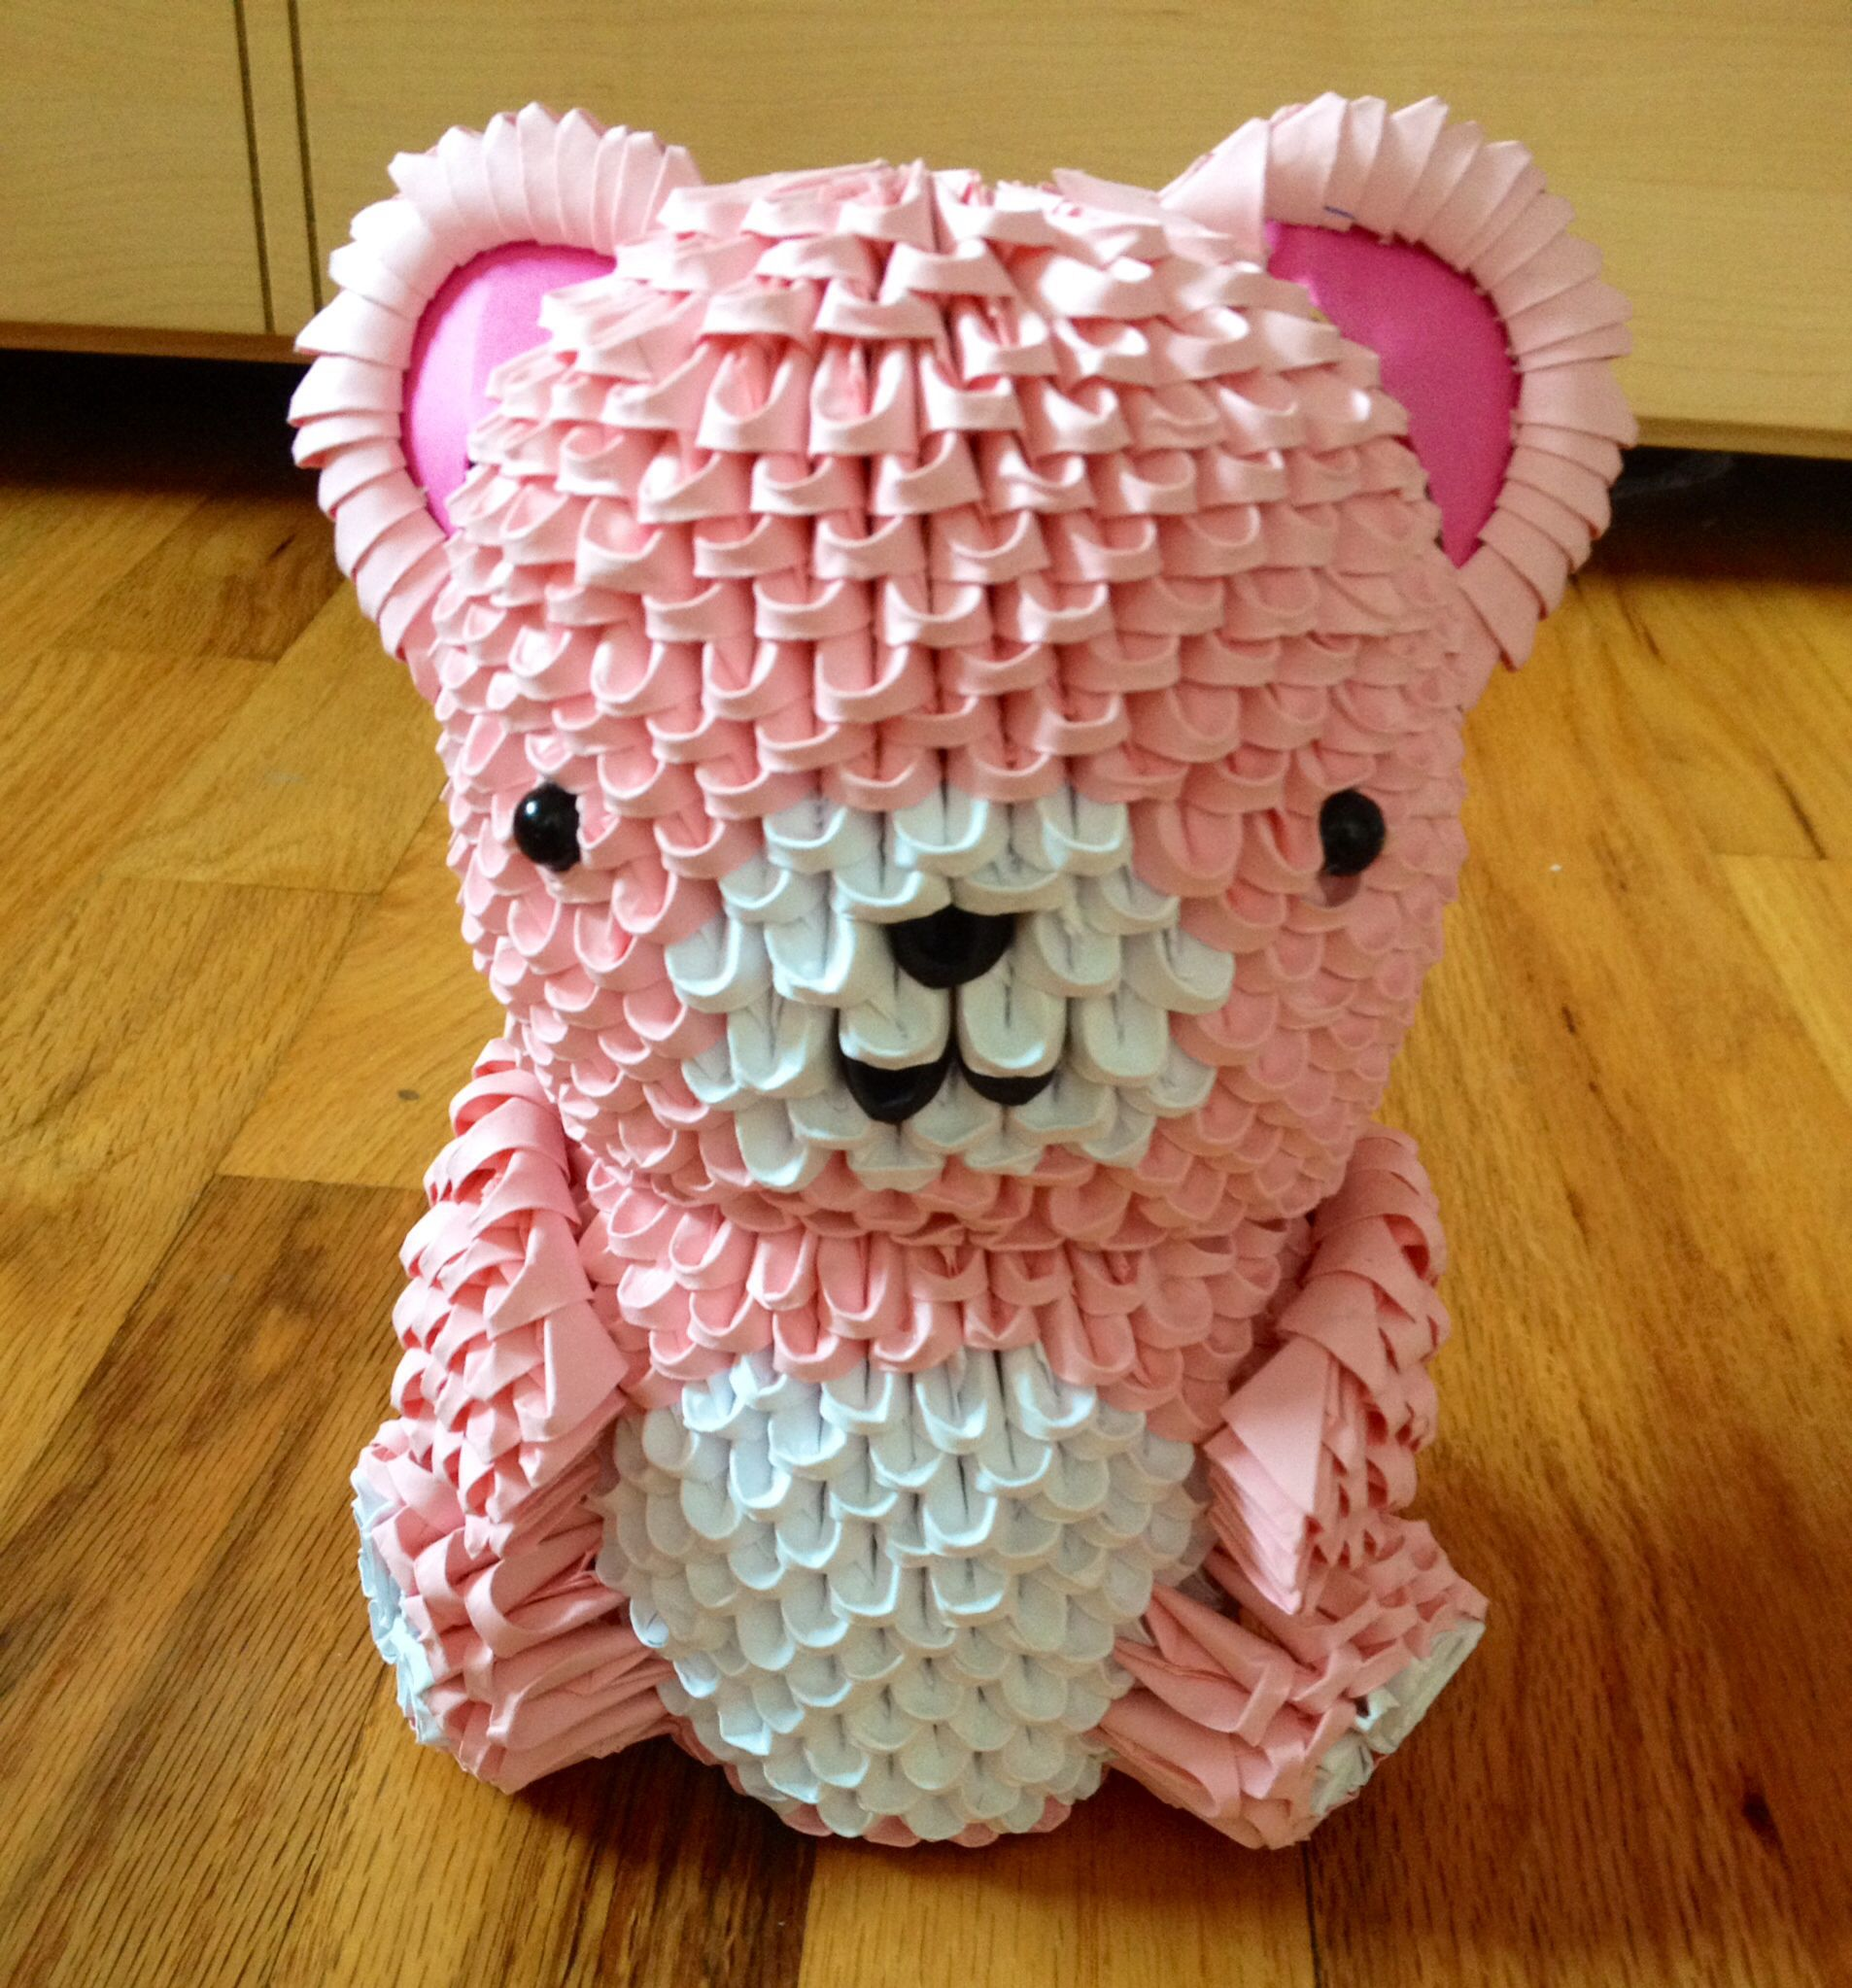 3D origami teddy bear | 3d origami | Pinterest | Origami ... - photo#47